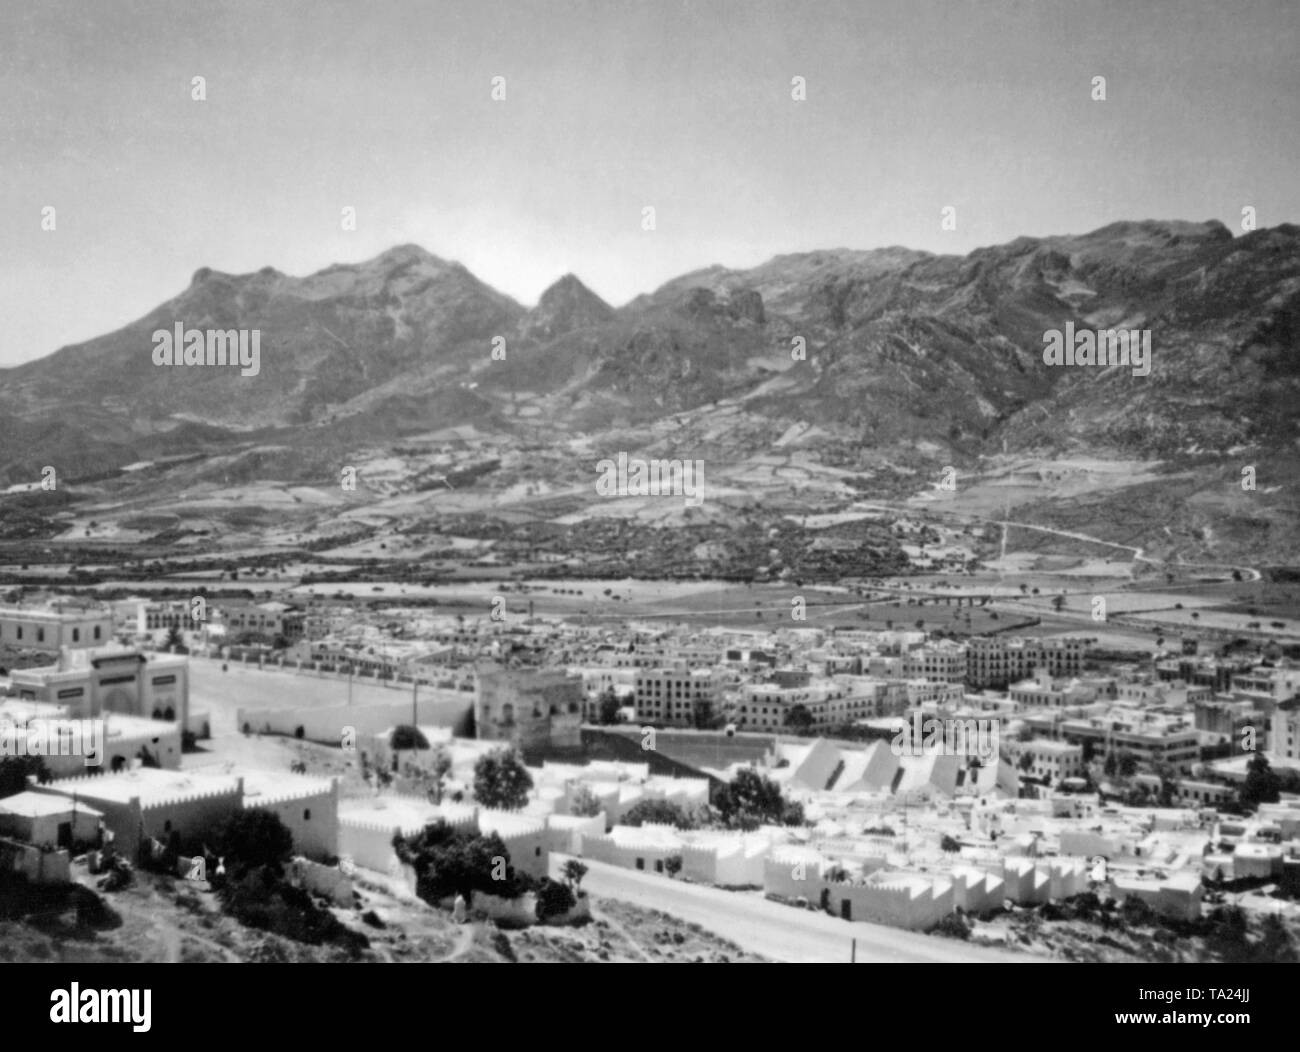 Photo of the city of Tetouan on the mediterranean coast of Spanish Morocco. In the background, foothills of the Atlas Mountains. This was the place where German Junkers Ju 52 transport aircrafts with the paintwork of the German Condor Legion started their flight loaded with Moroccan soldiers to the Spanish mainland from. After the outbreak of the Spanish Civil War on July 27, 1936, Germany provided military assistance to General Franco (Operation Feuerzeauber). In addition, 20 Ju-52s (mostly Lufthansa aircrafts) were provided, which flew more than 800 flights of Spanish national troops, - Stock Image